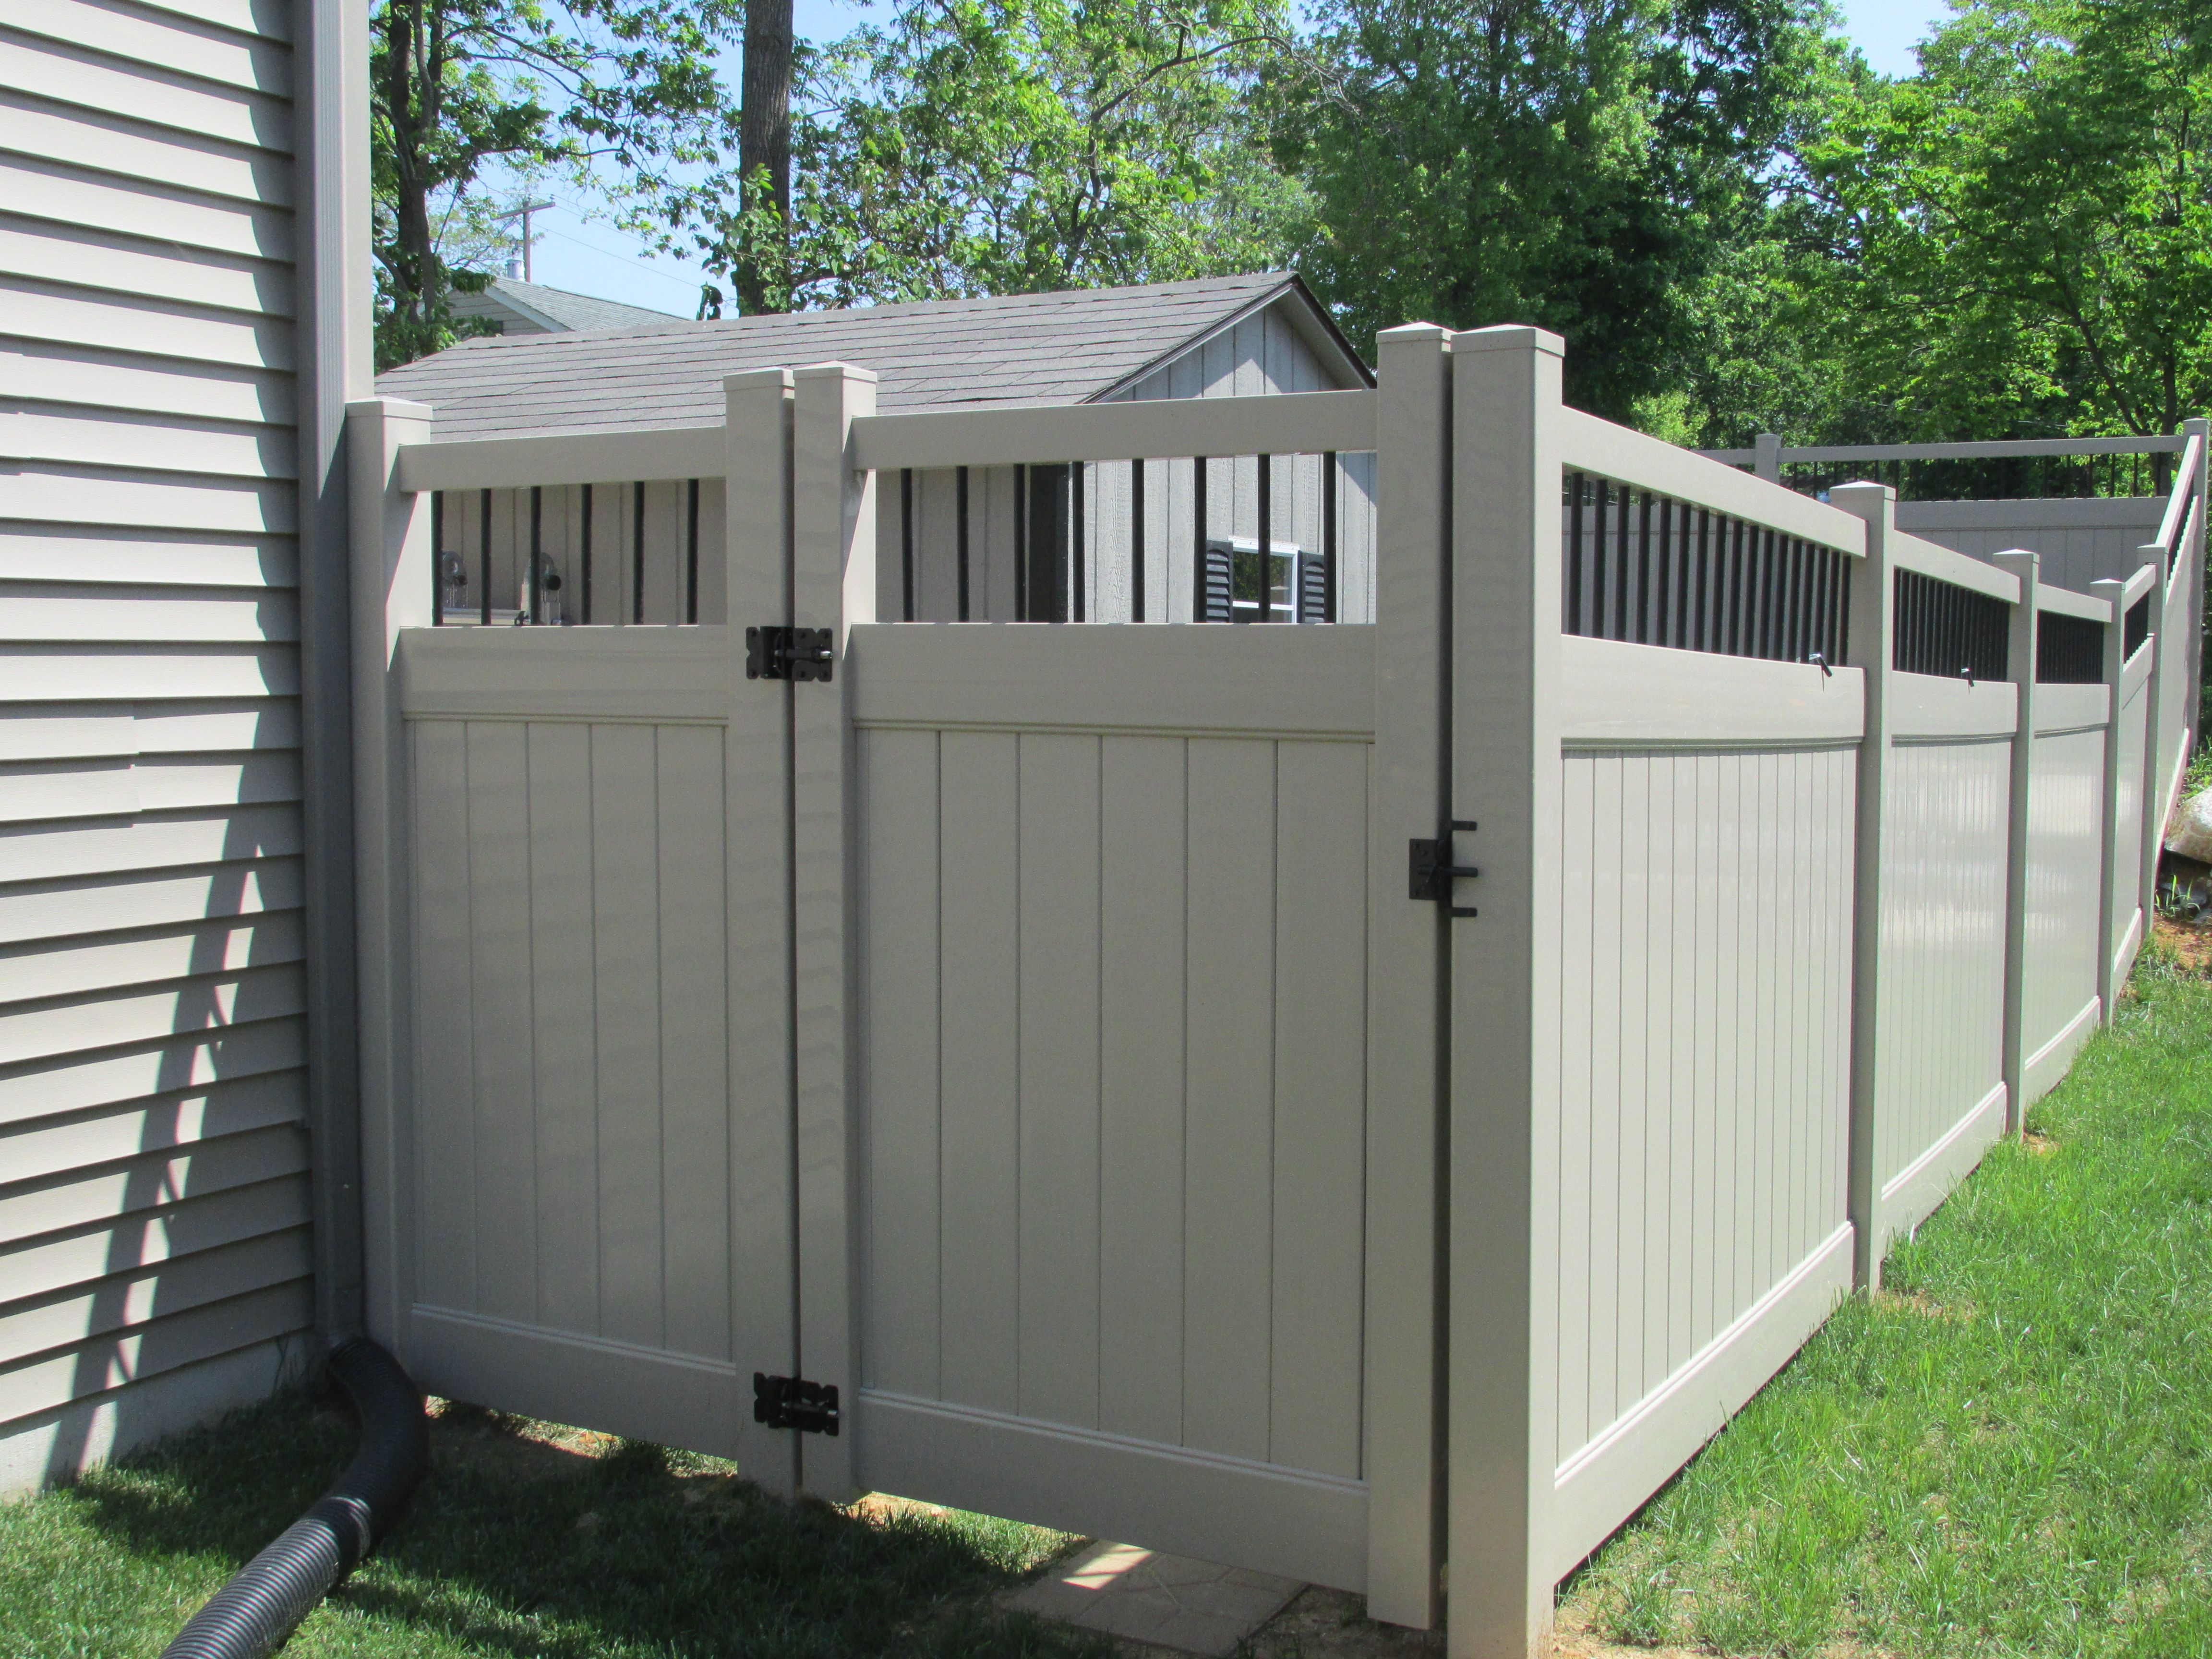 #inexpensive #idear #build #outdoor #patio #fence&railing